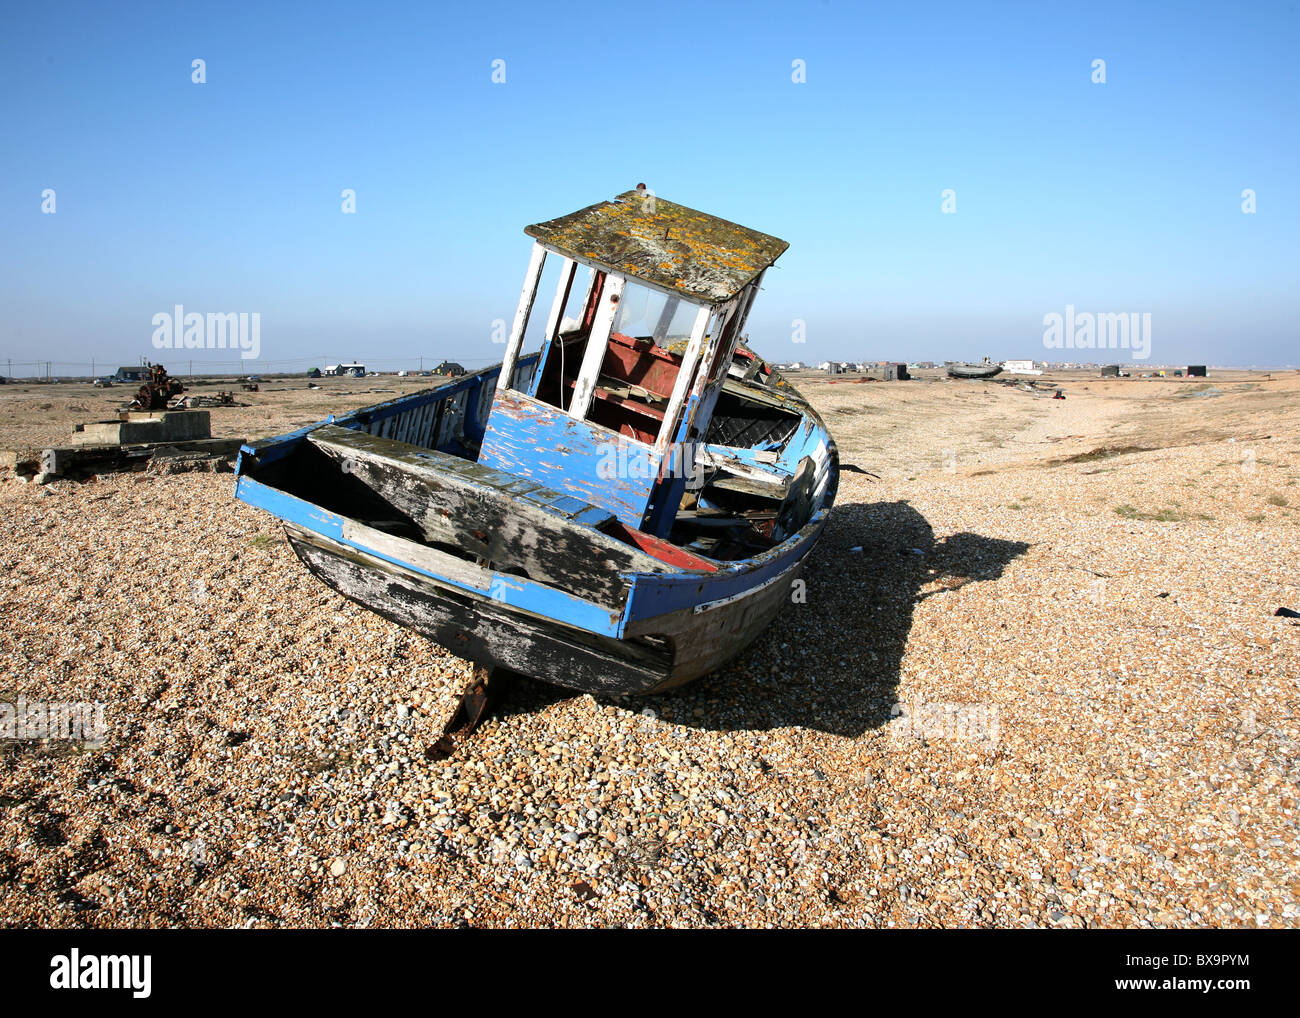 Abandoned boat at Dungeness - Stock Image